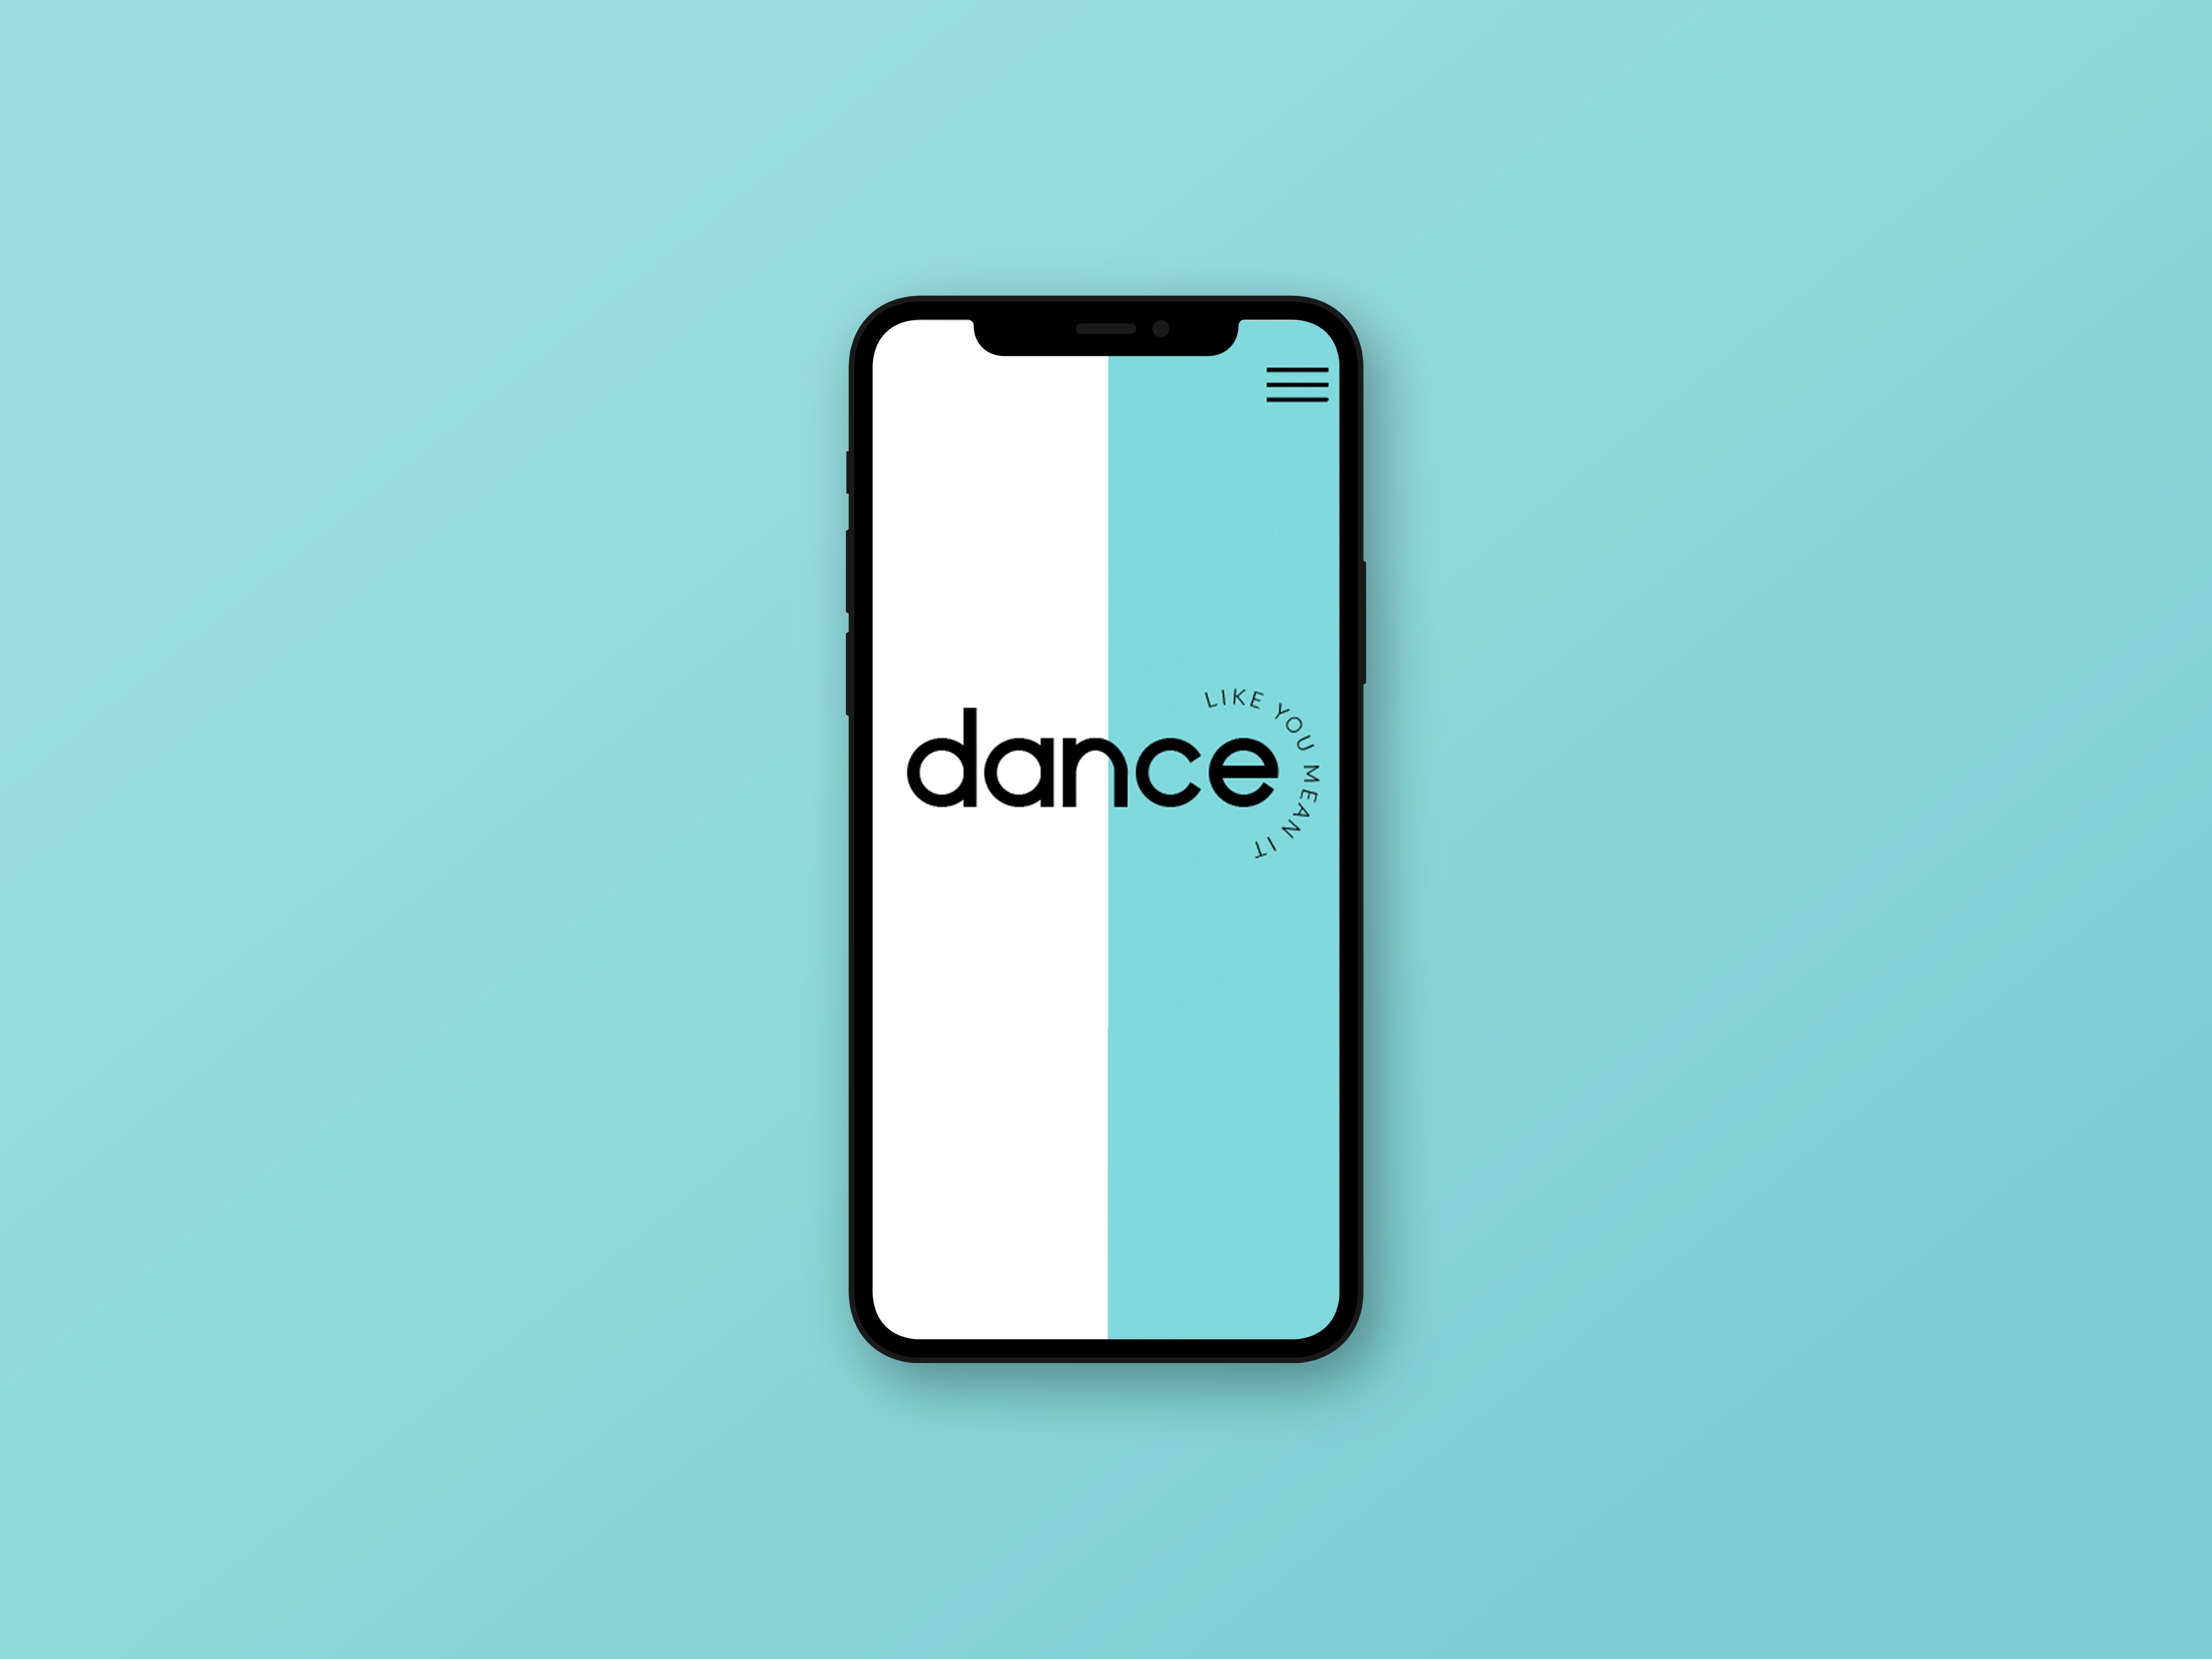 Dance Like You Mean It homepage on a iPhone